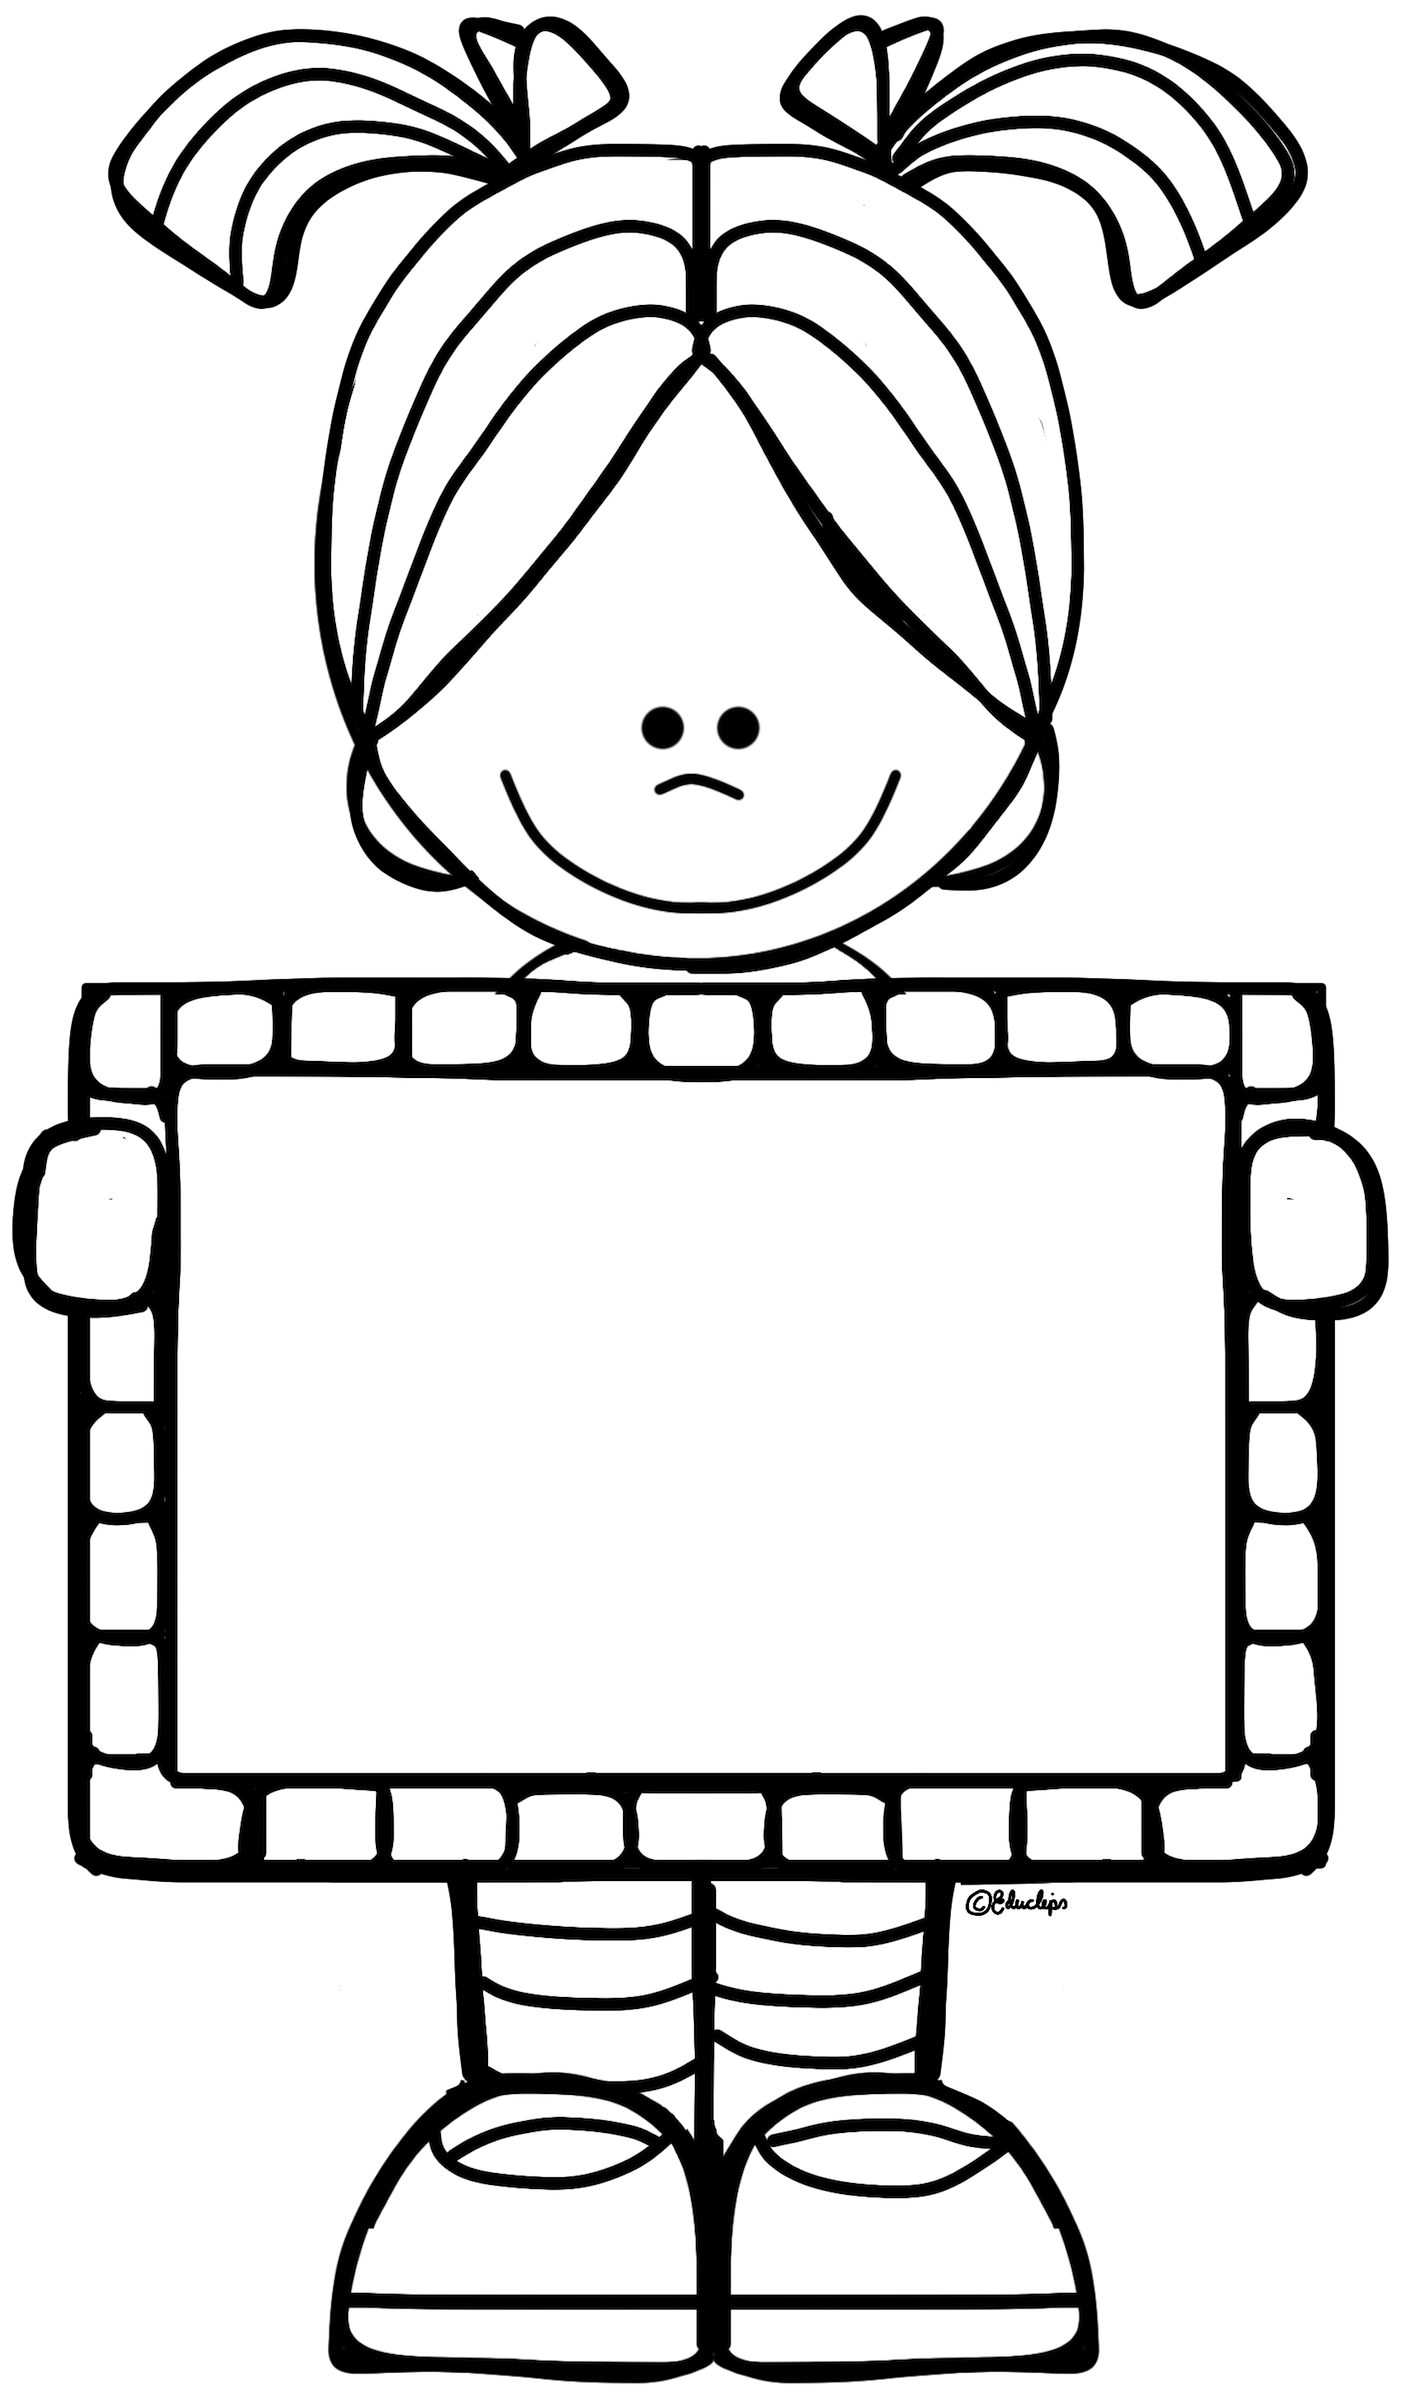 jpg transparent Back to school clipart black and white. Pin do a n